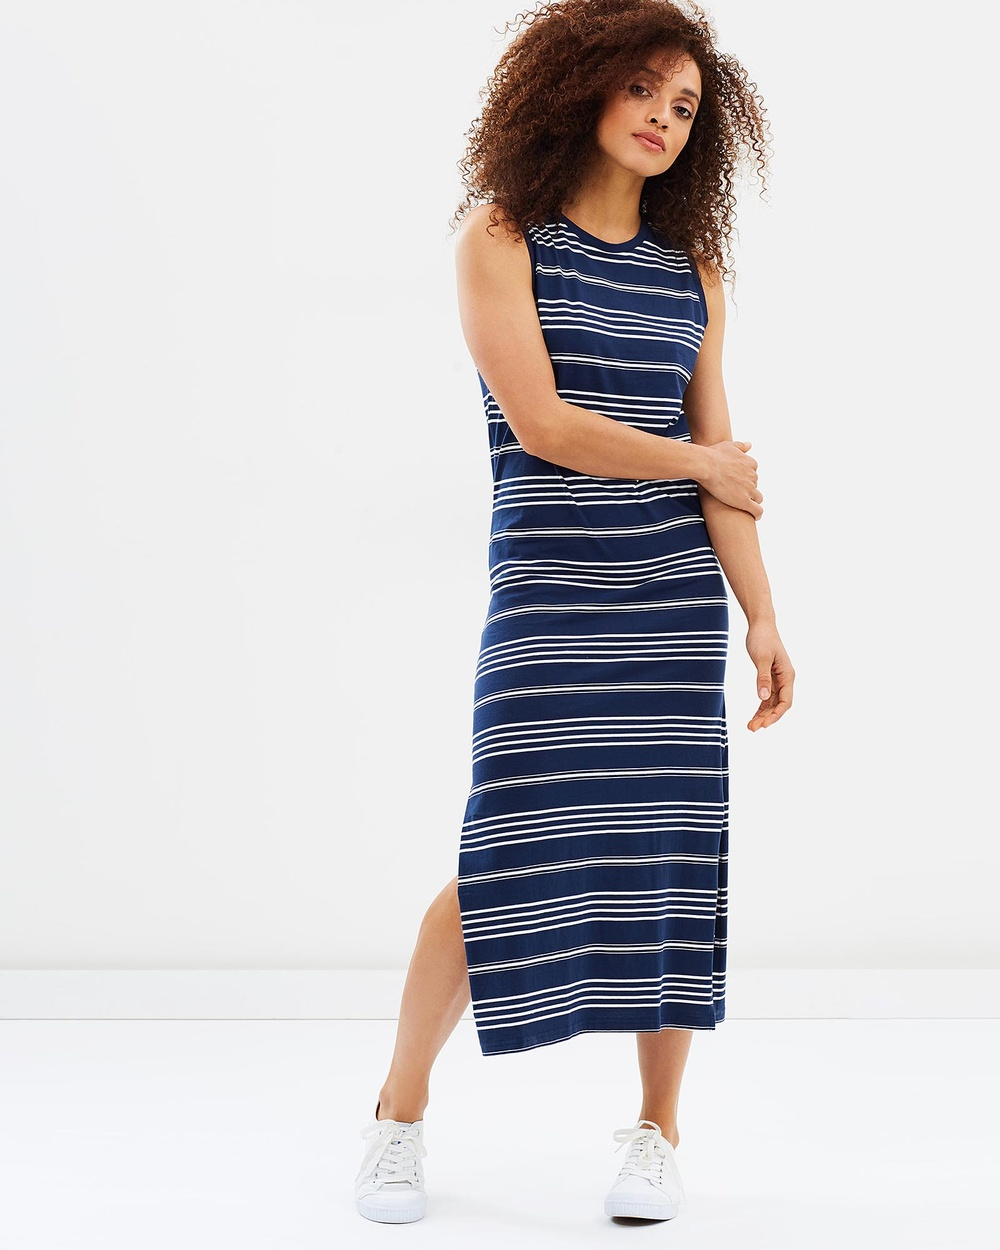 Tee Ink Salty Midi Tank Dress Dresses Navy Salty Midi Tank Dress